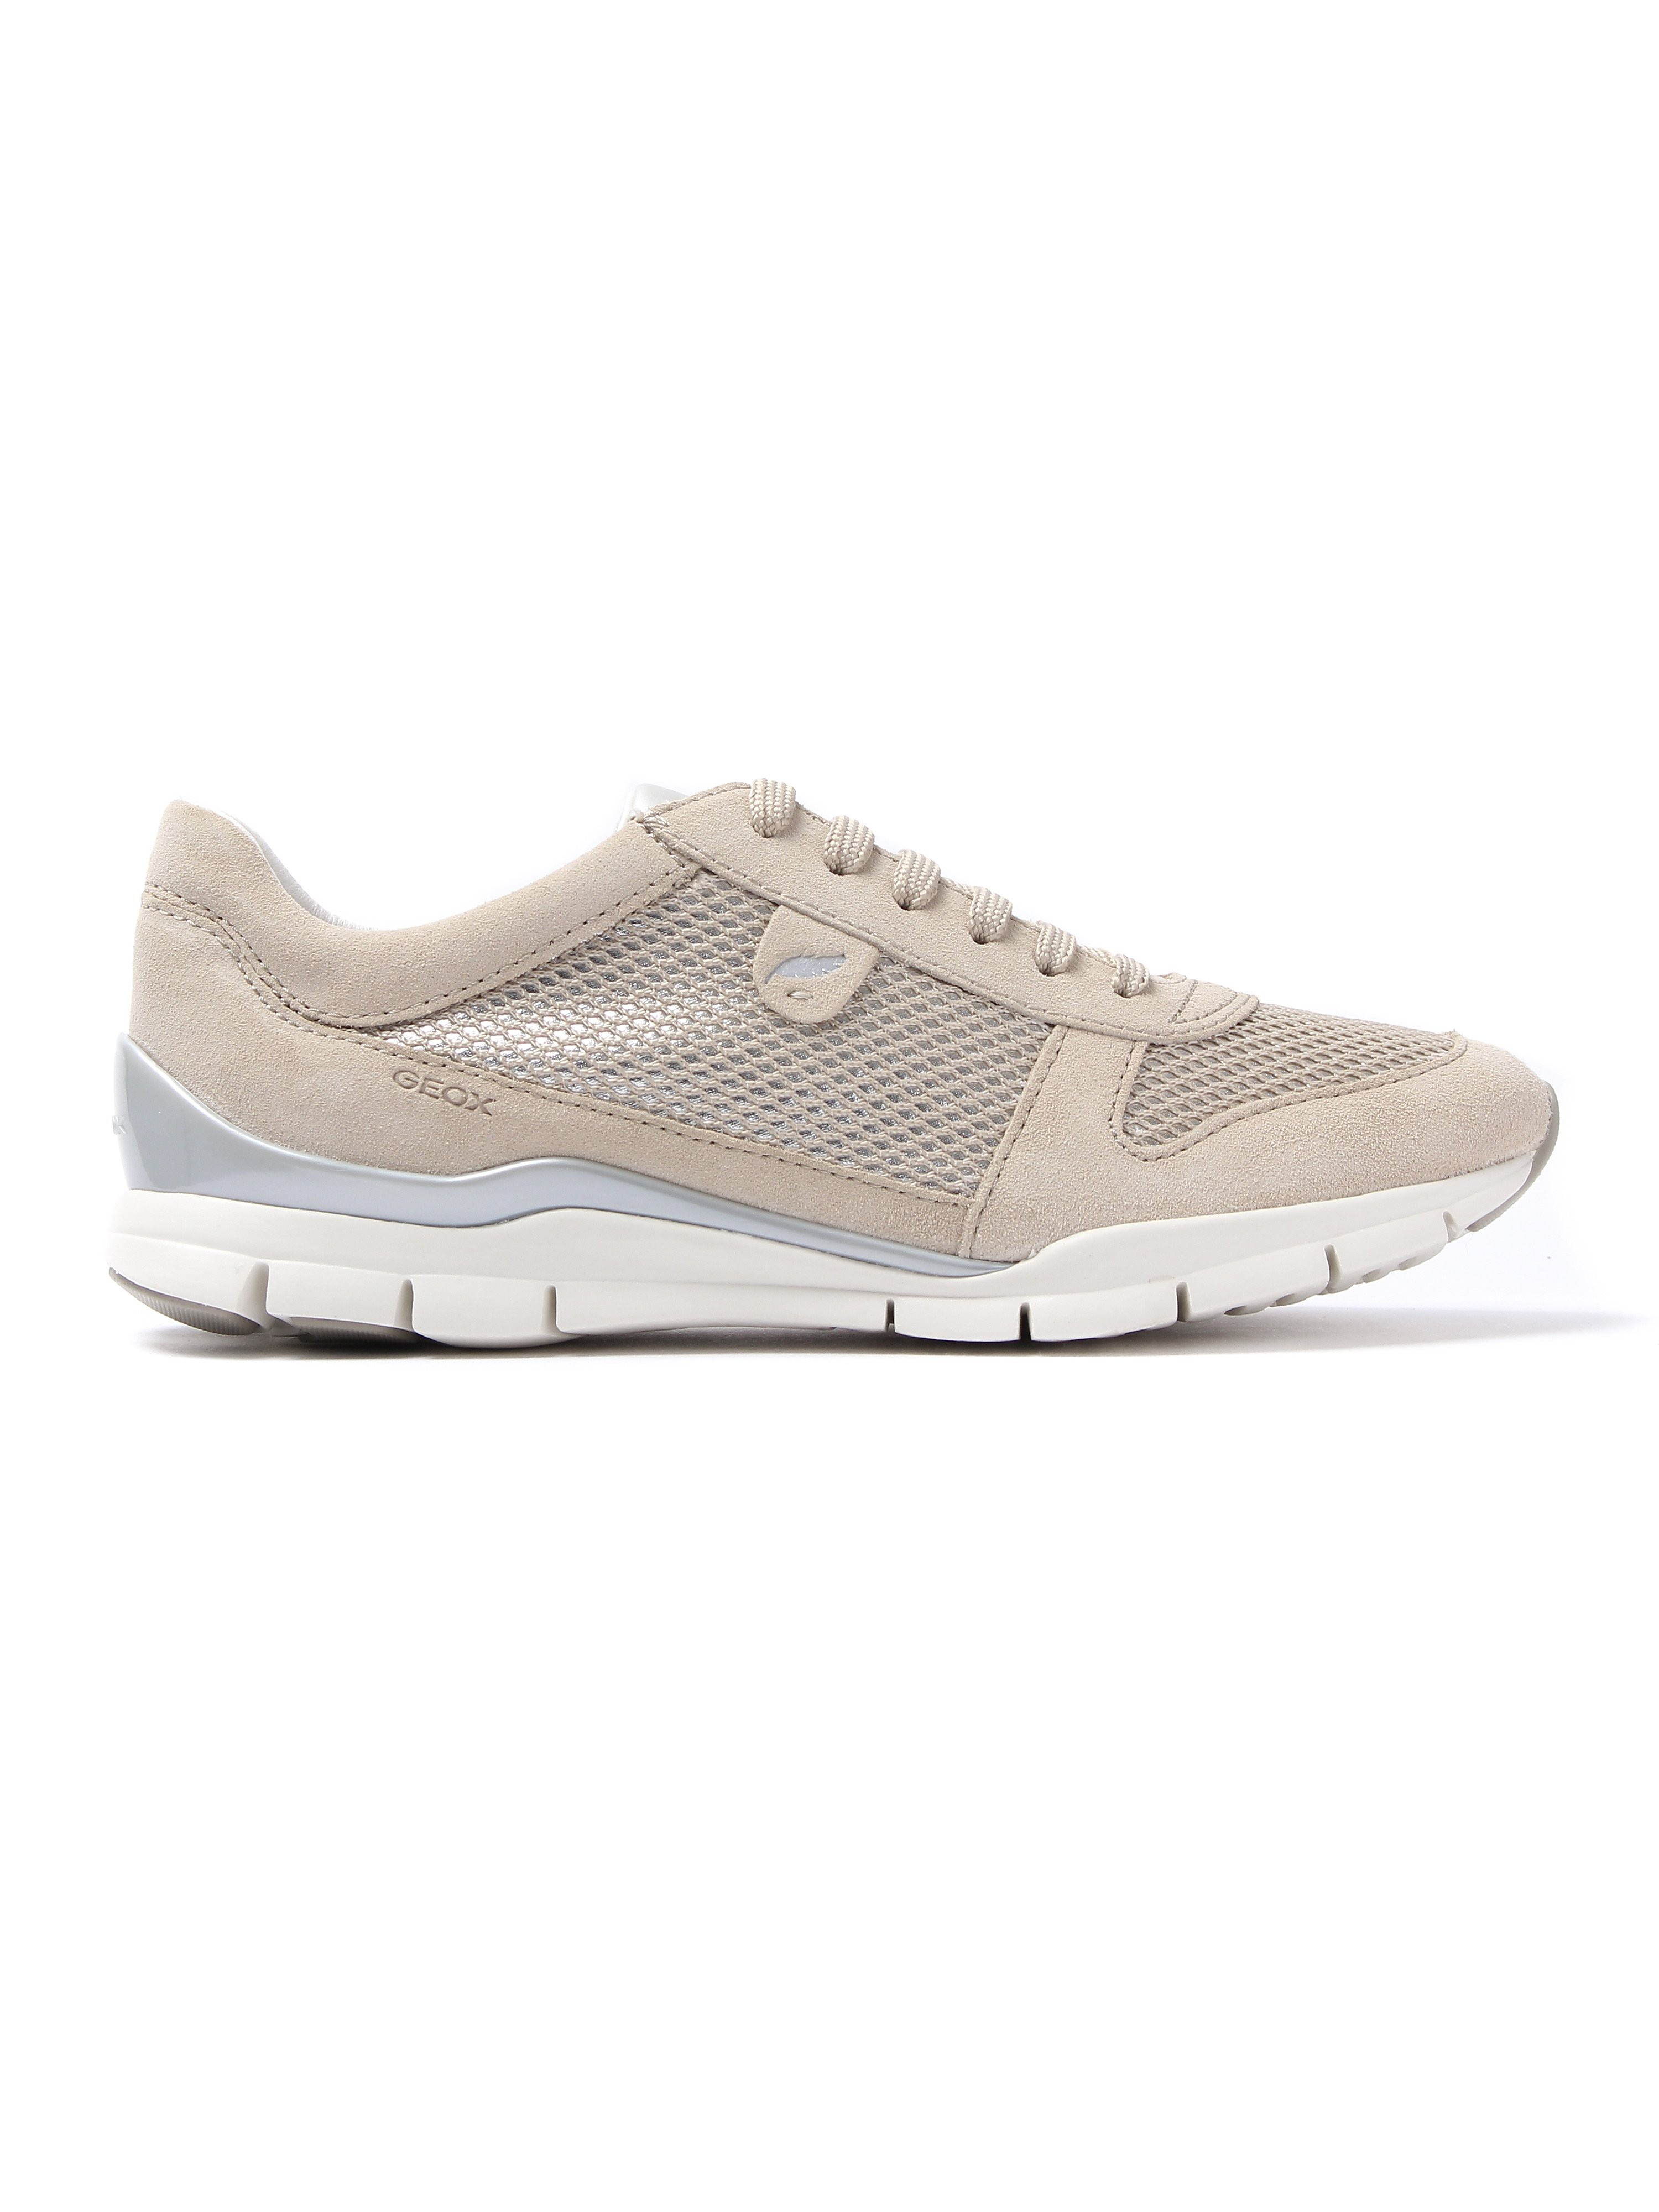 Geox Women's Sukie Suede & Metallic Mesh Trainers - Skin